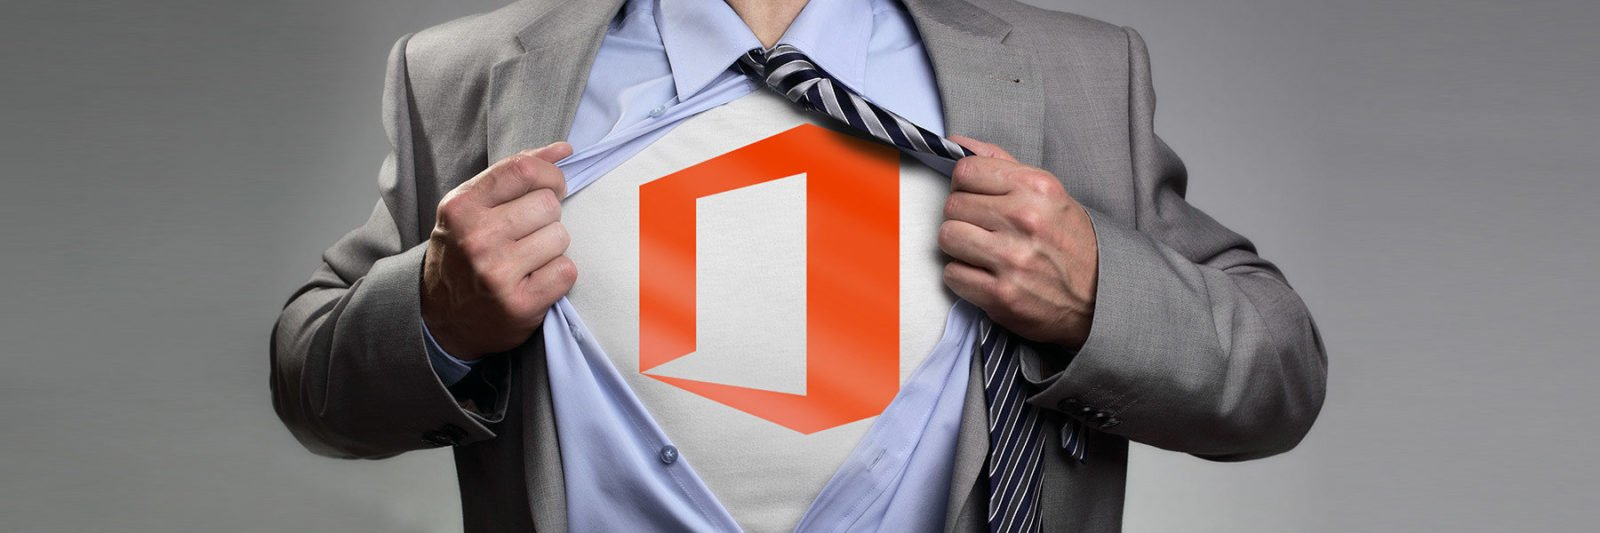 Man ripping shirt open, revealing Office 365